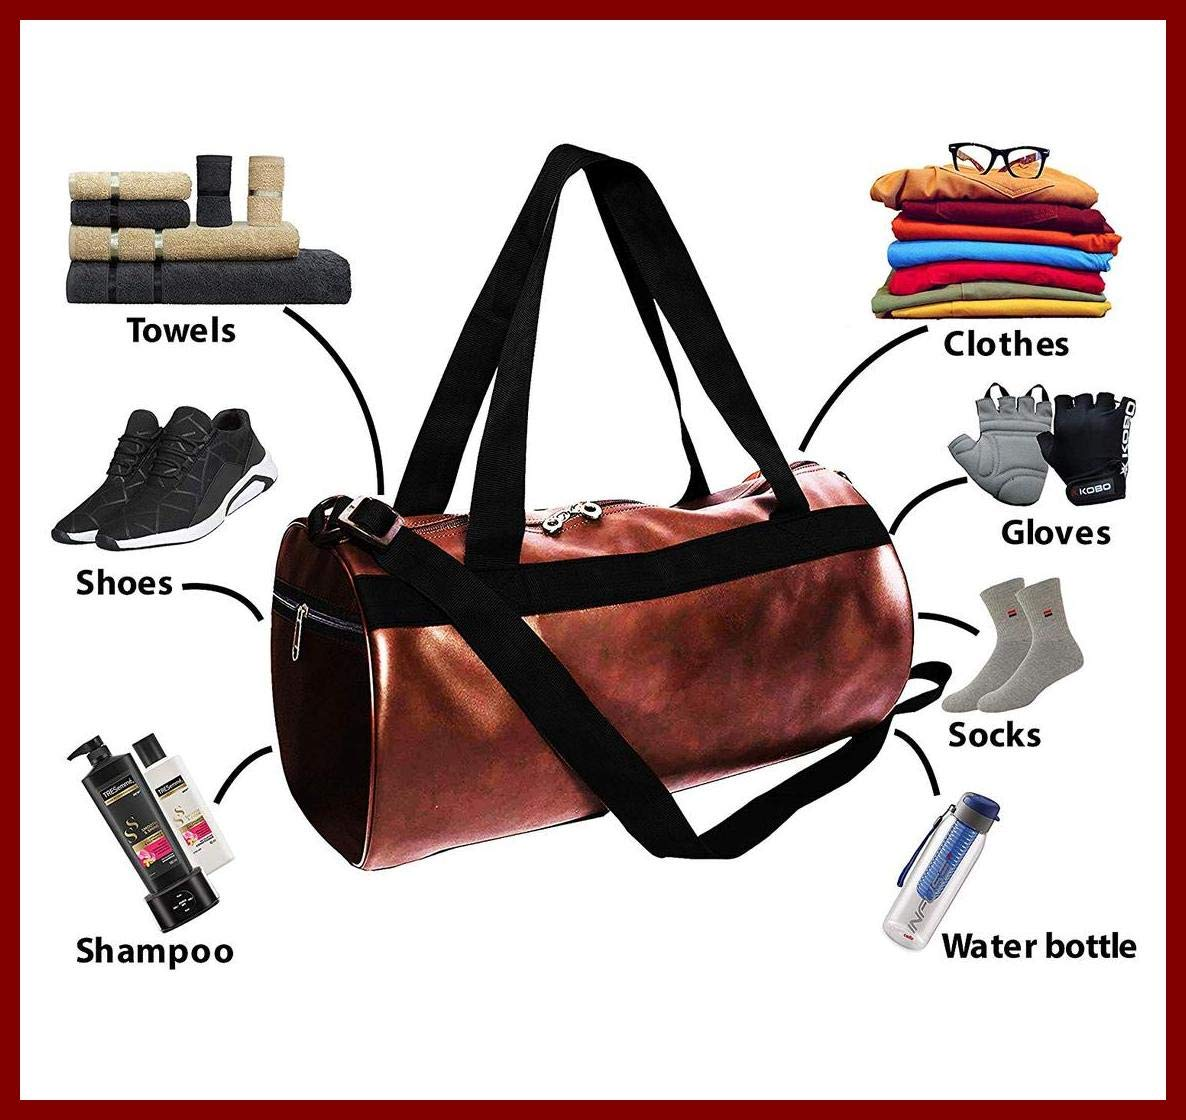 Priish Leather Fitness Gym Bag Shoulder Duffel Backpack for Travel with Side Compartments for Men and Women Gym Basketball Football Cricket Kit Multipurpose - Large (Brown and Black) (Brown) product image